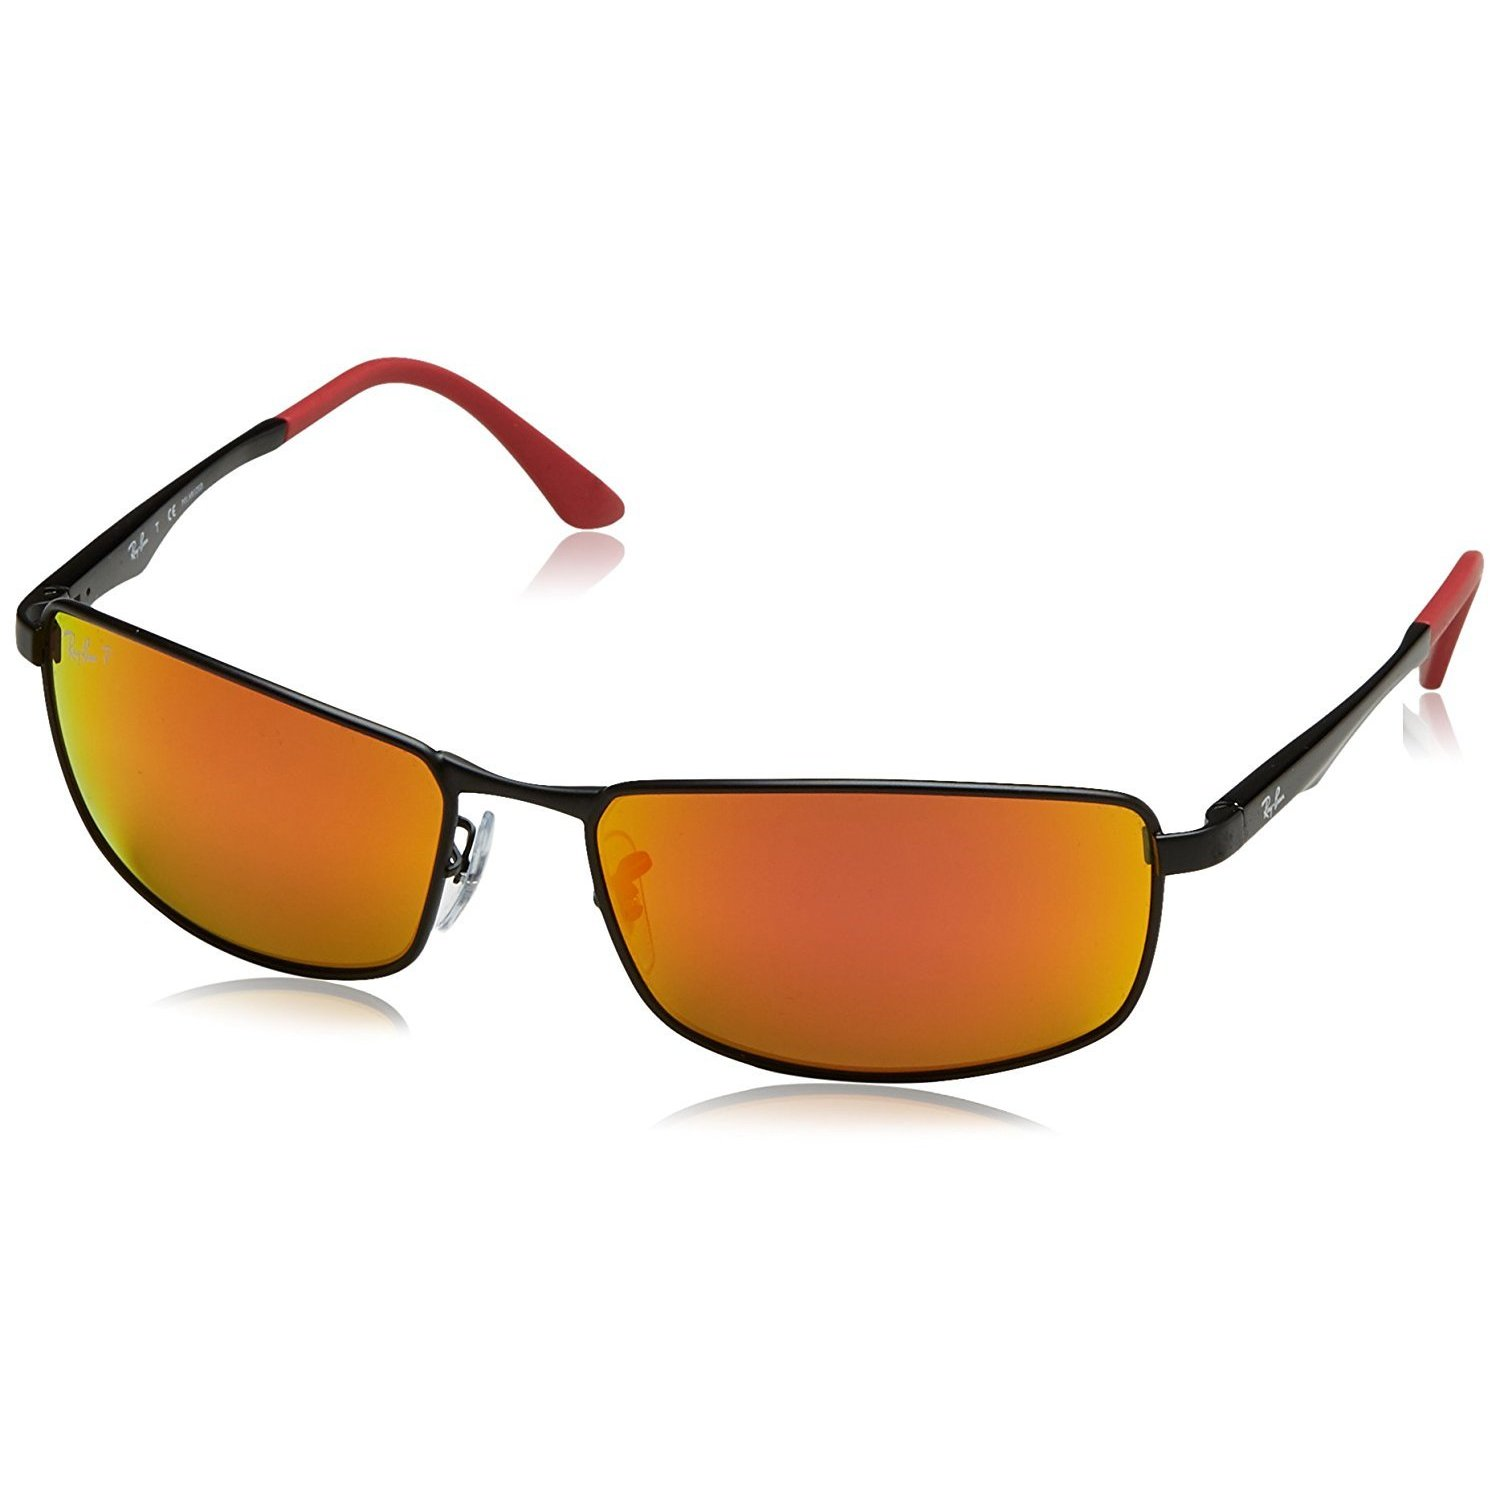 85967739e3 Shop Ray-Ban Unisex RB3498 006 6S Black Frame Polarized Orange Flash 61 mm  Lens Sunglasses - Free Shipping Today - Overstock - 16740913